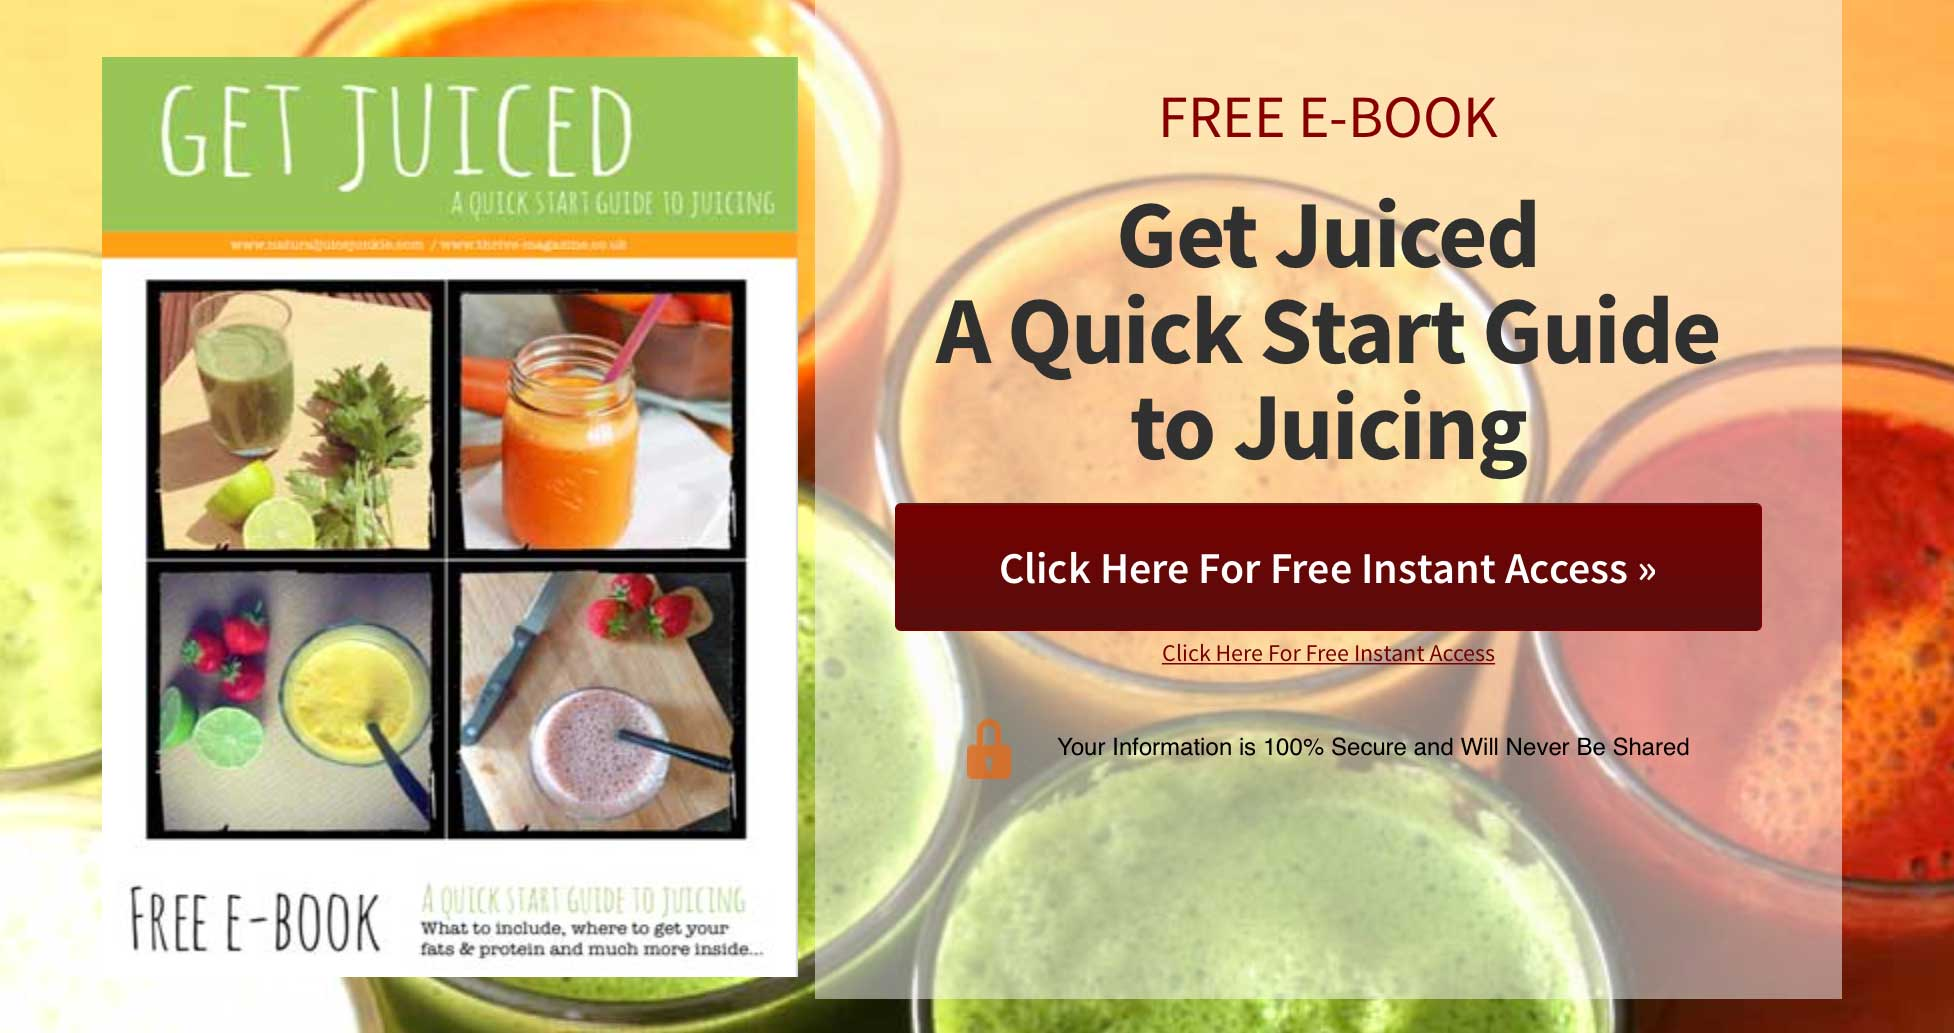 Natural Juice Junkie - FREE Juicing Quick Start Guide